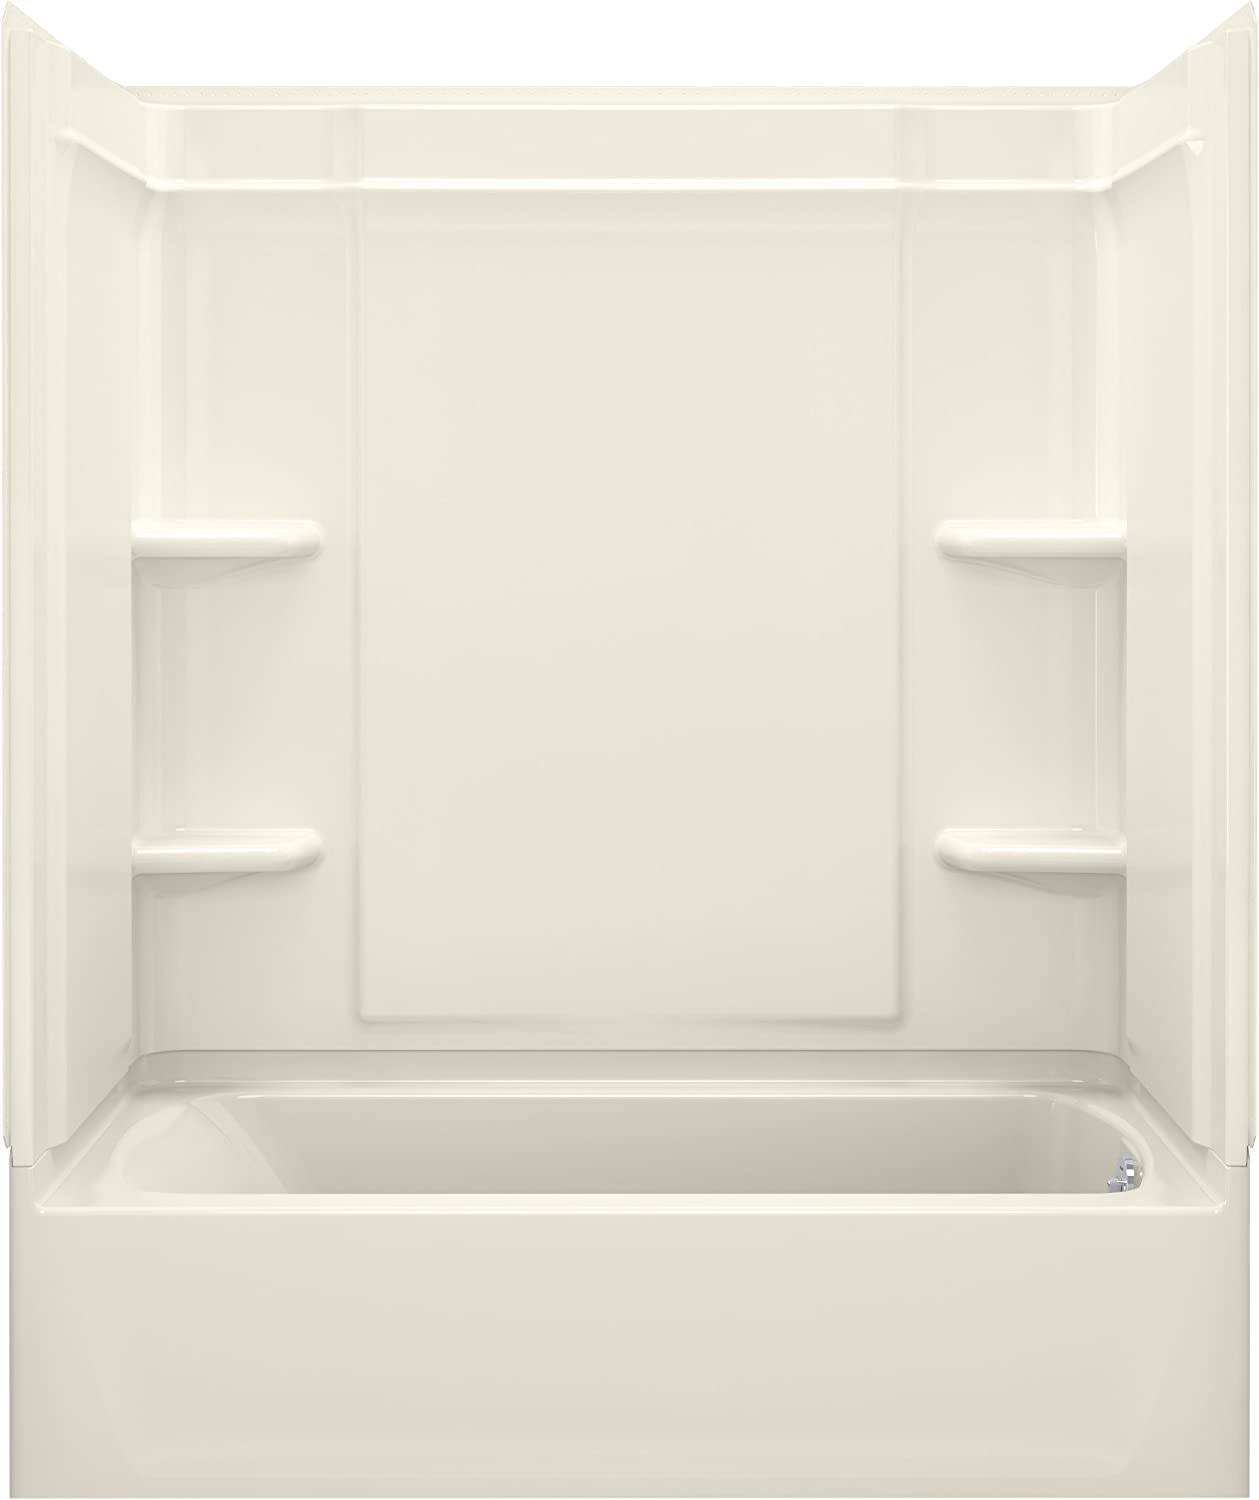 Free shipping STERLING a KOHLER Company 71320120-96 33.25-In Limited time cheap sale 60.25 Ensemble X